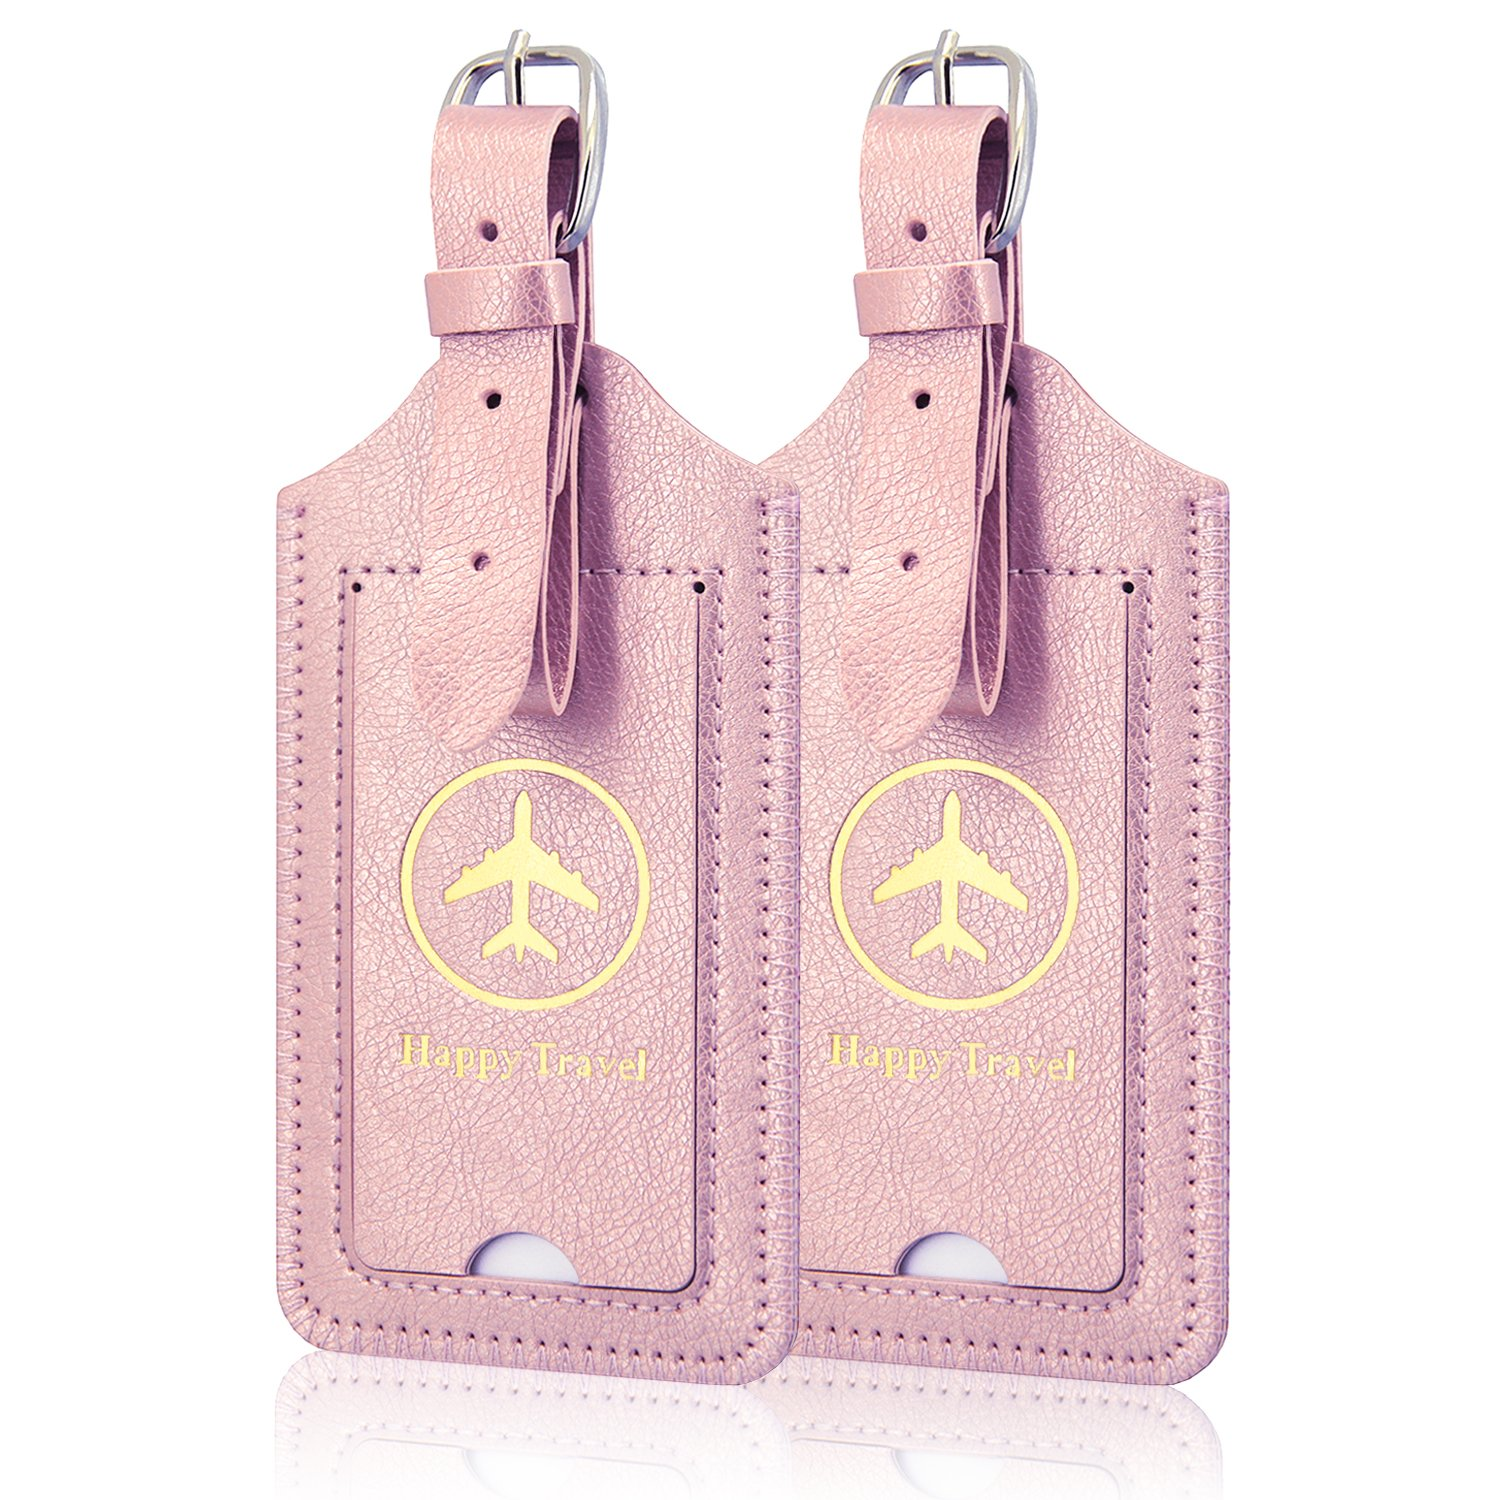 Luggage Tags, ACdream Leather Case Luggage Bag Tags Travel Tags 2 Pieces Set, Pink Star of Paris